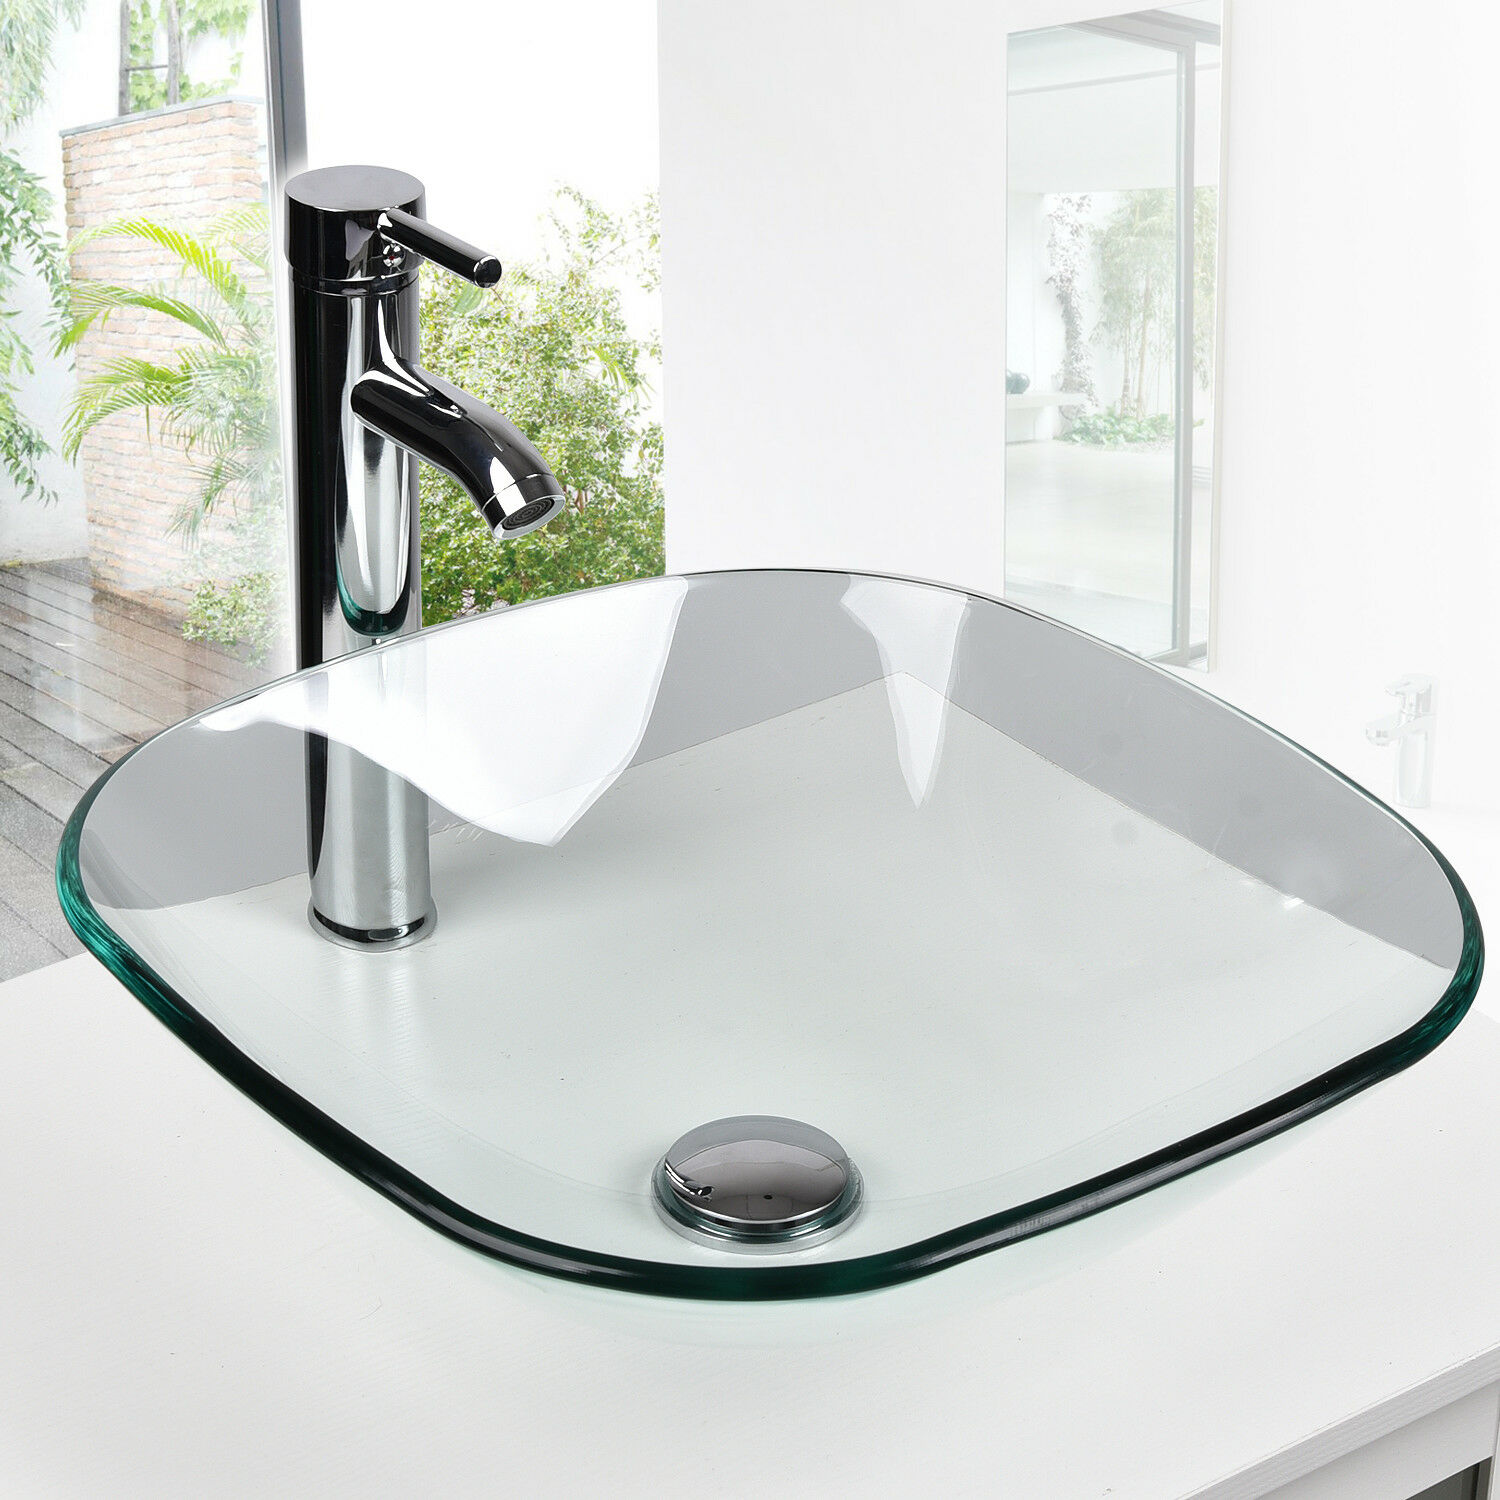 Oval Bathroom Tempered Clear Glass Vessel Sink Basin Bowl Ch